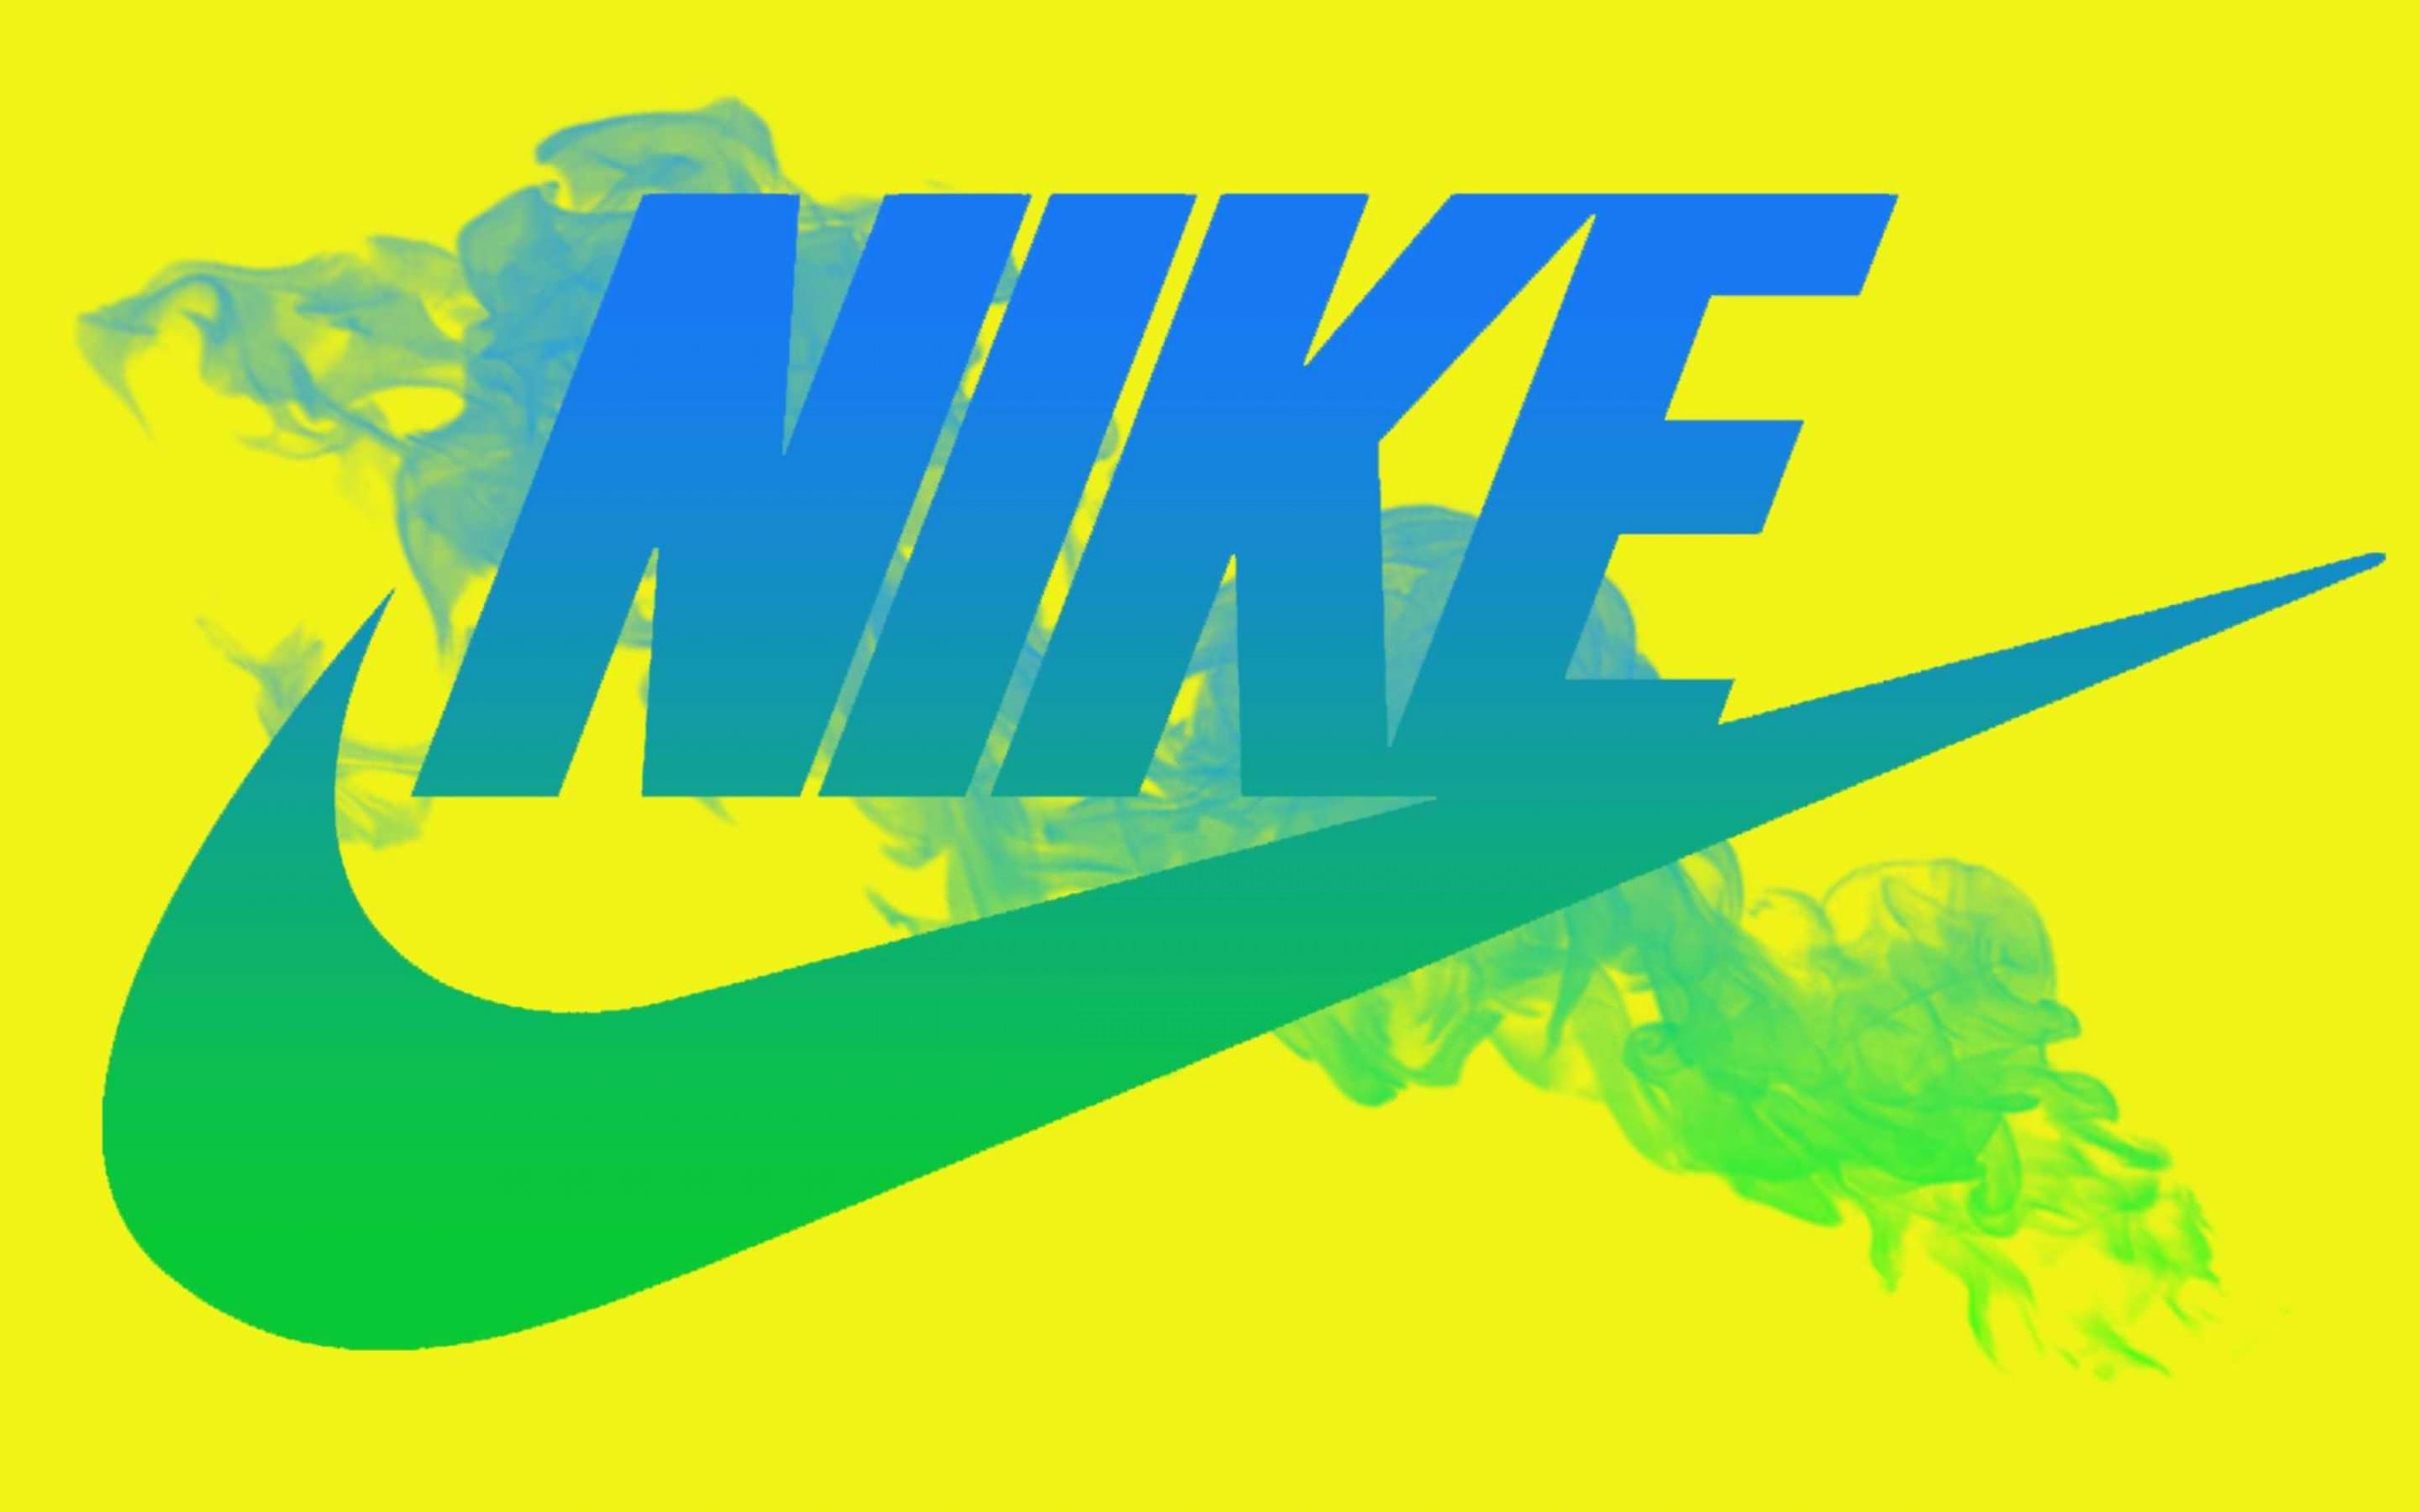 Blue Nike Logo in Yellow Background